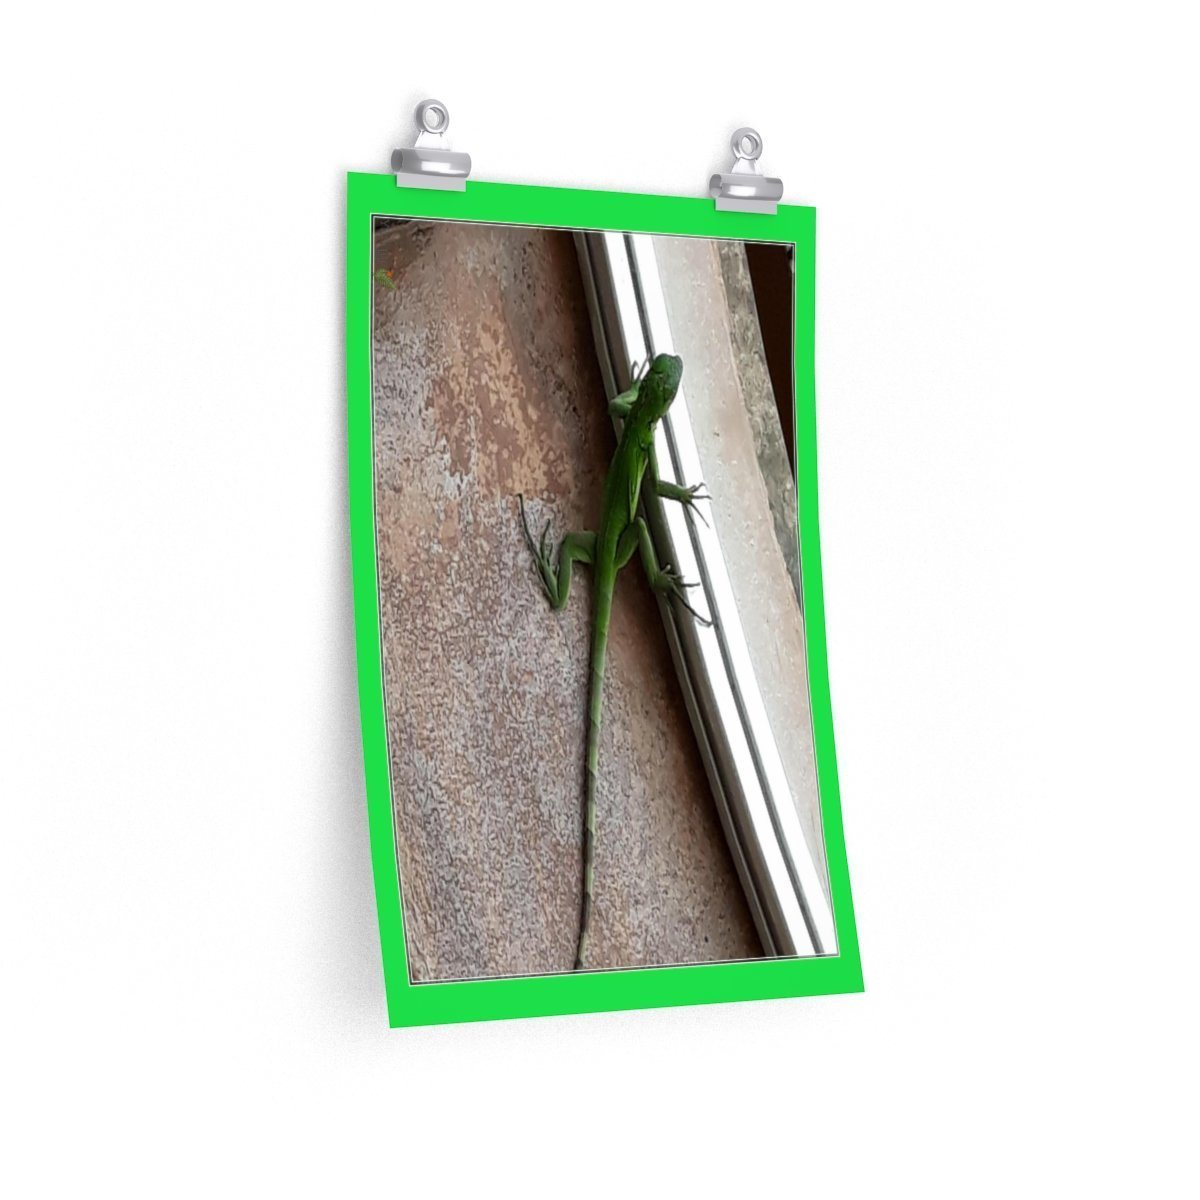 Low cost top-quality Posters - PR Pets and Animals - The Lizard Poster Printify